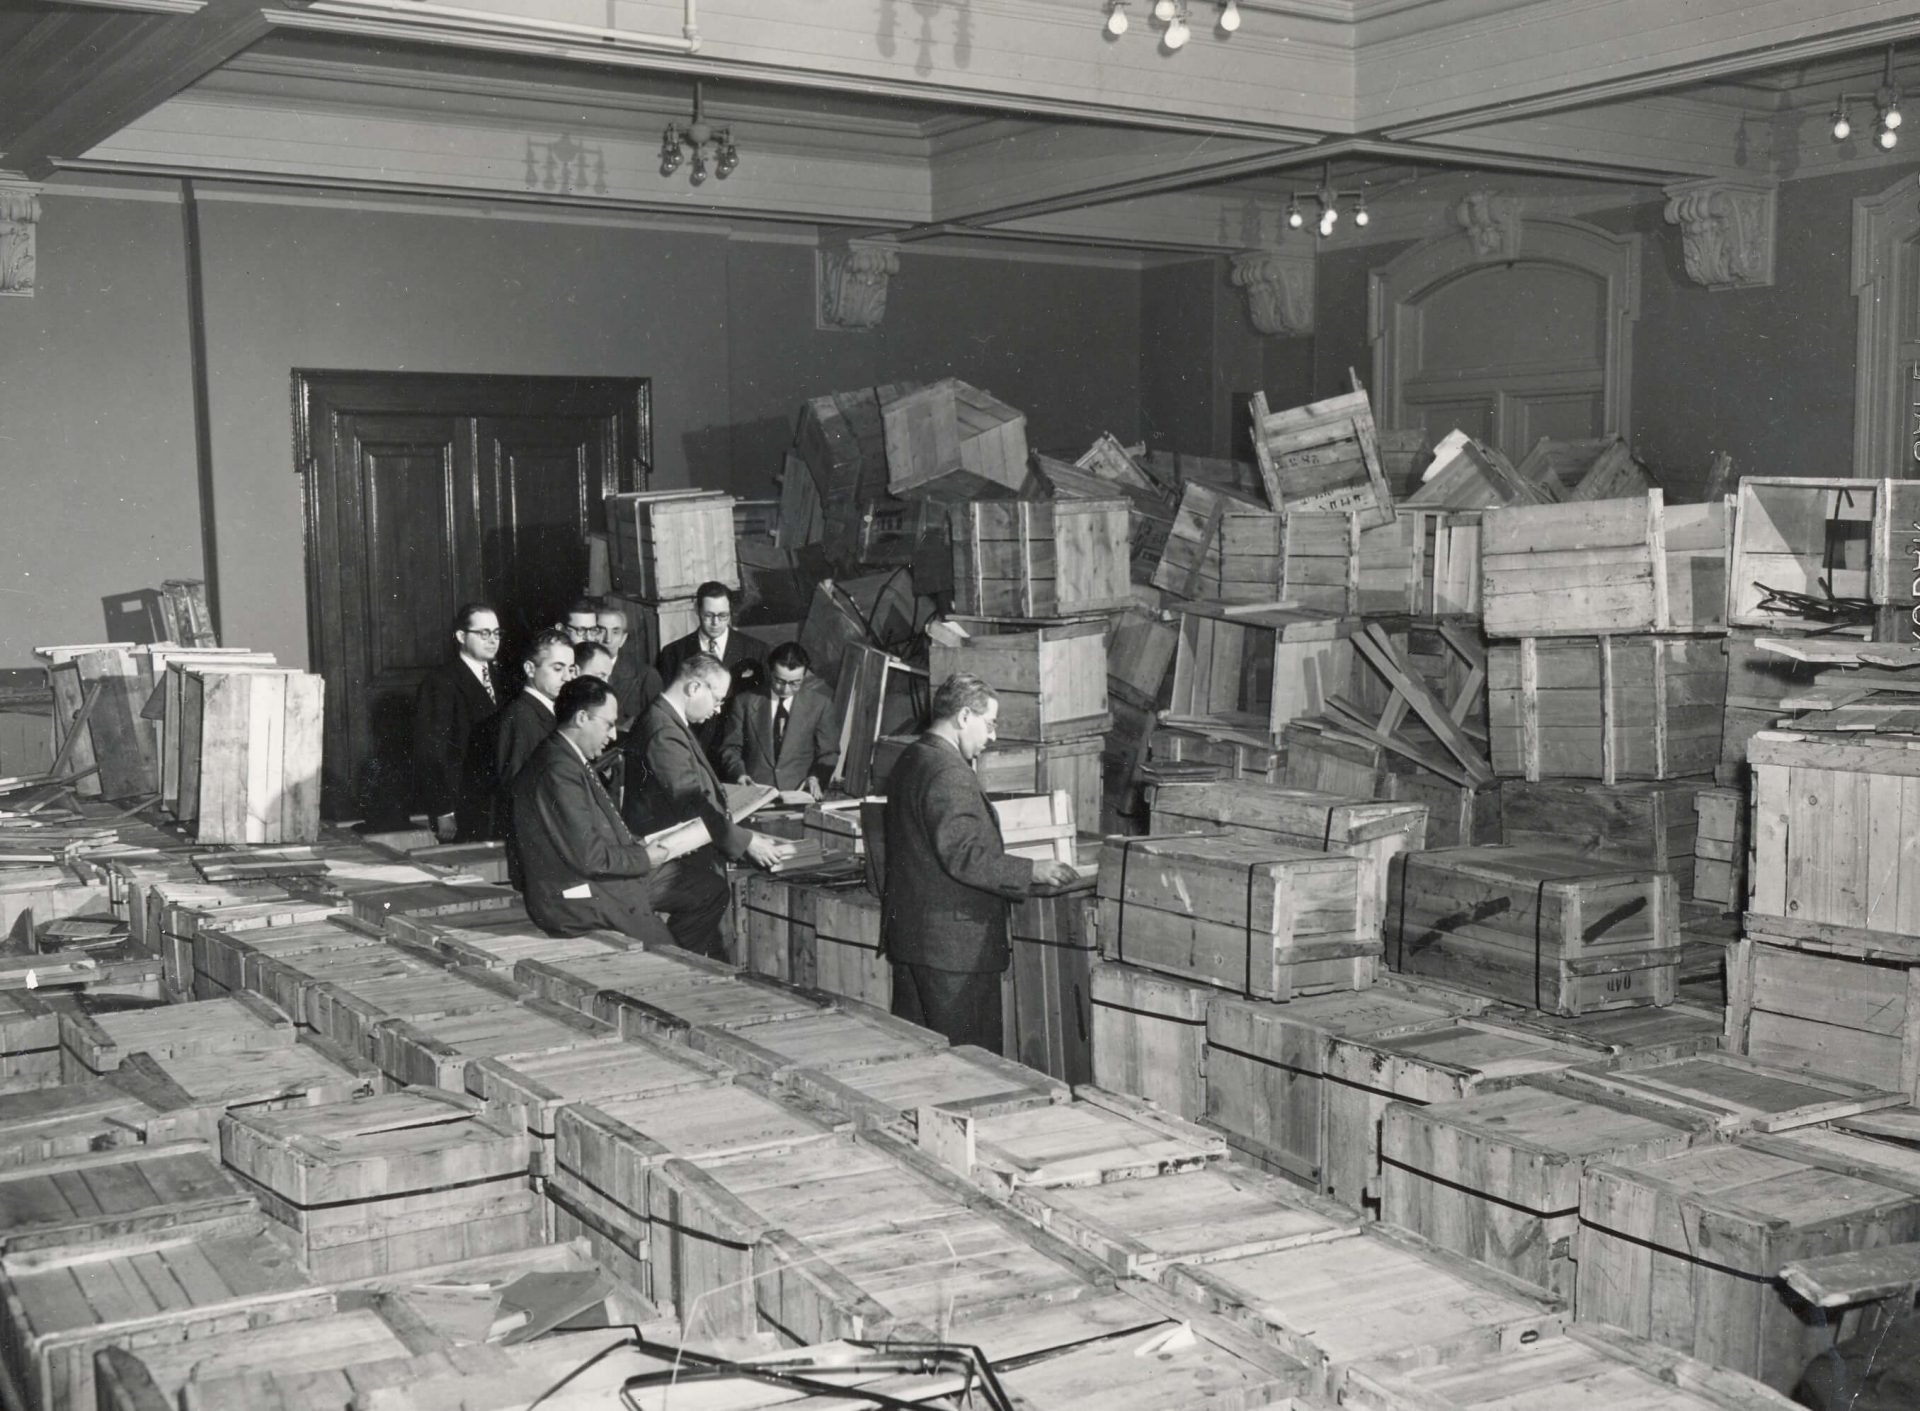 The Book Smugglers of the Vilnius Ghetto